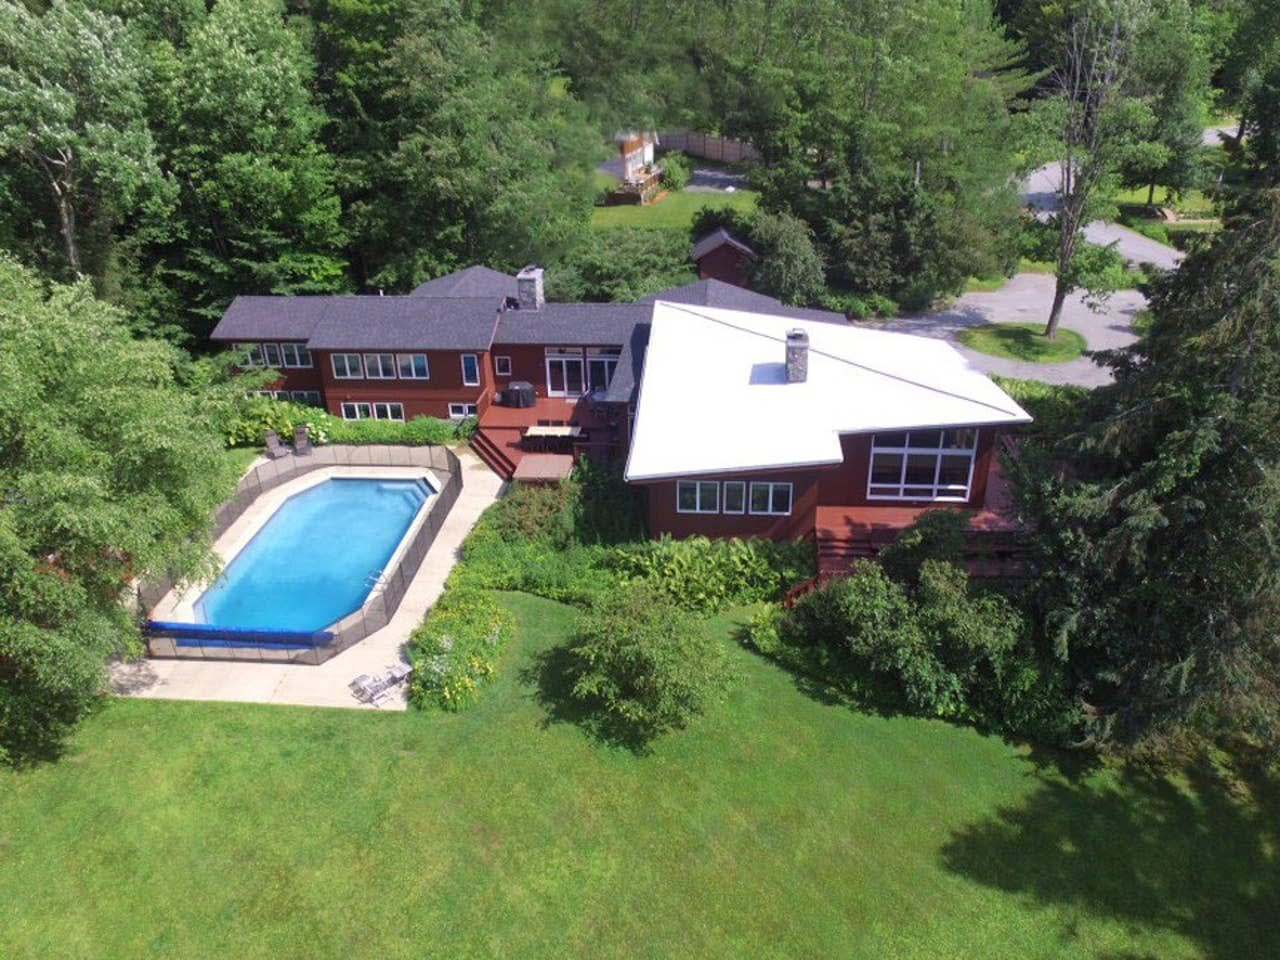 Large estate in Stowe Vermont with an inground pool